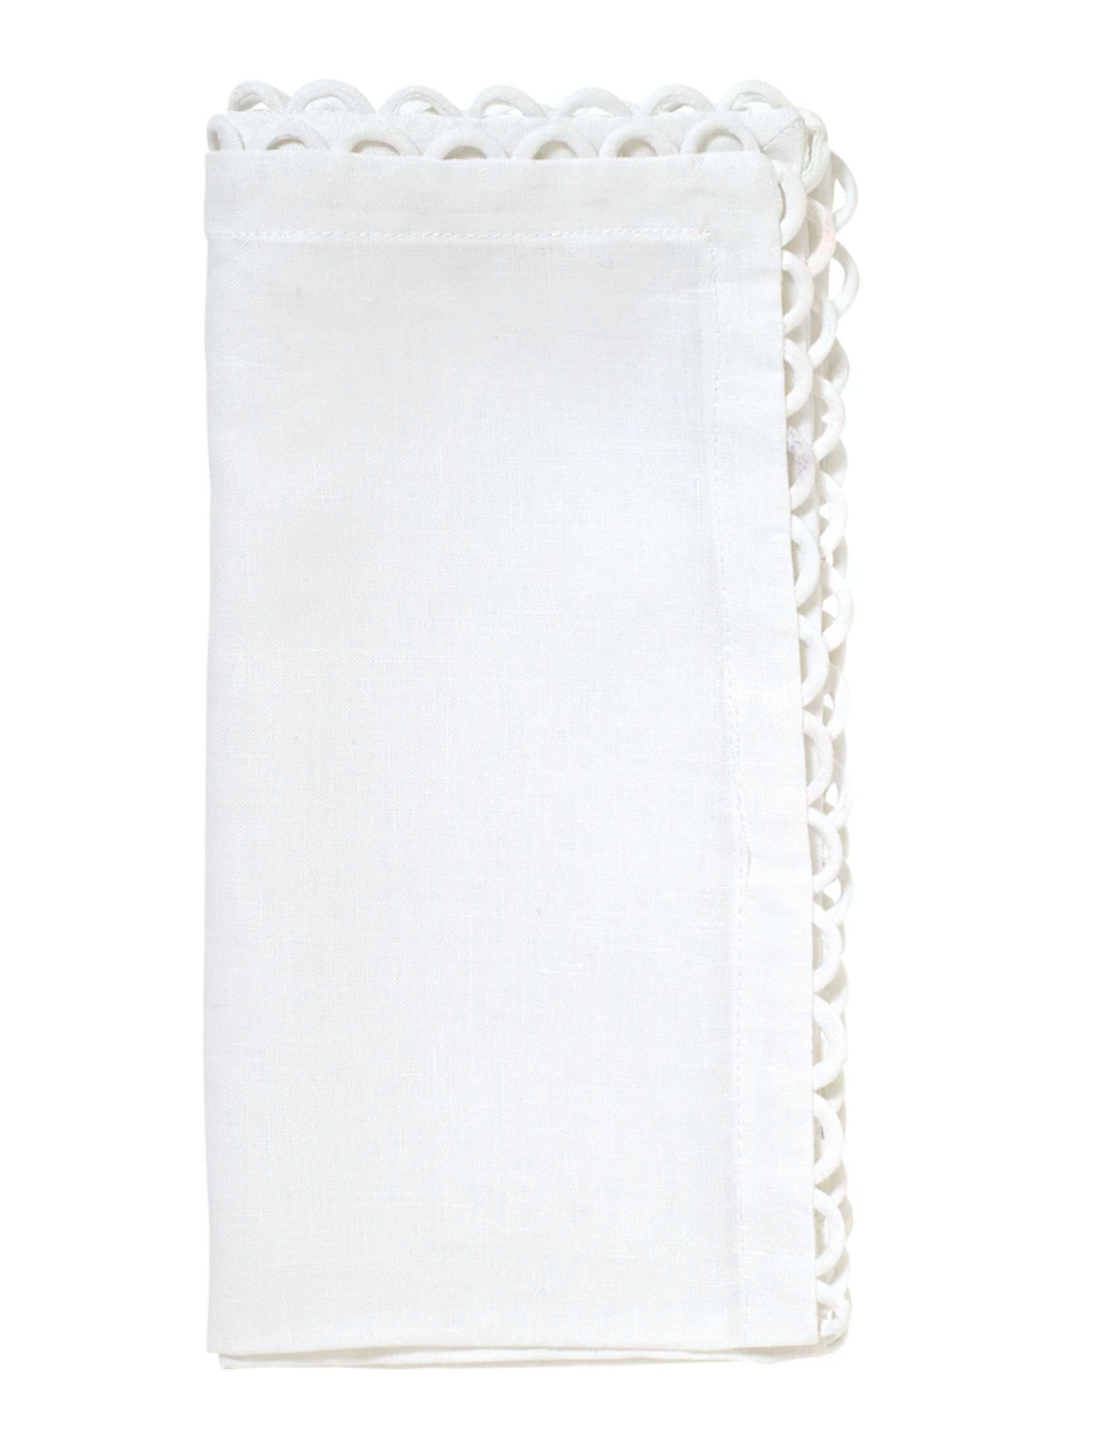 Loop Edge White Napkin, Set of 4